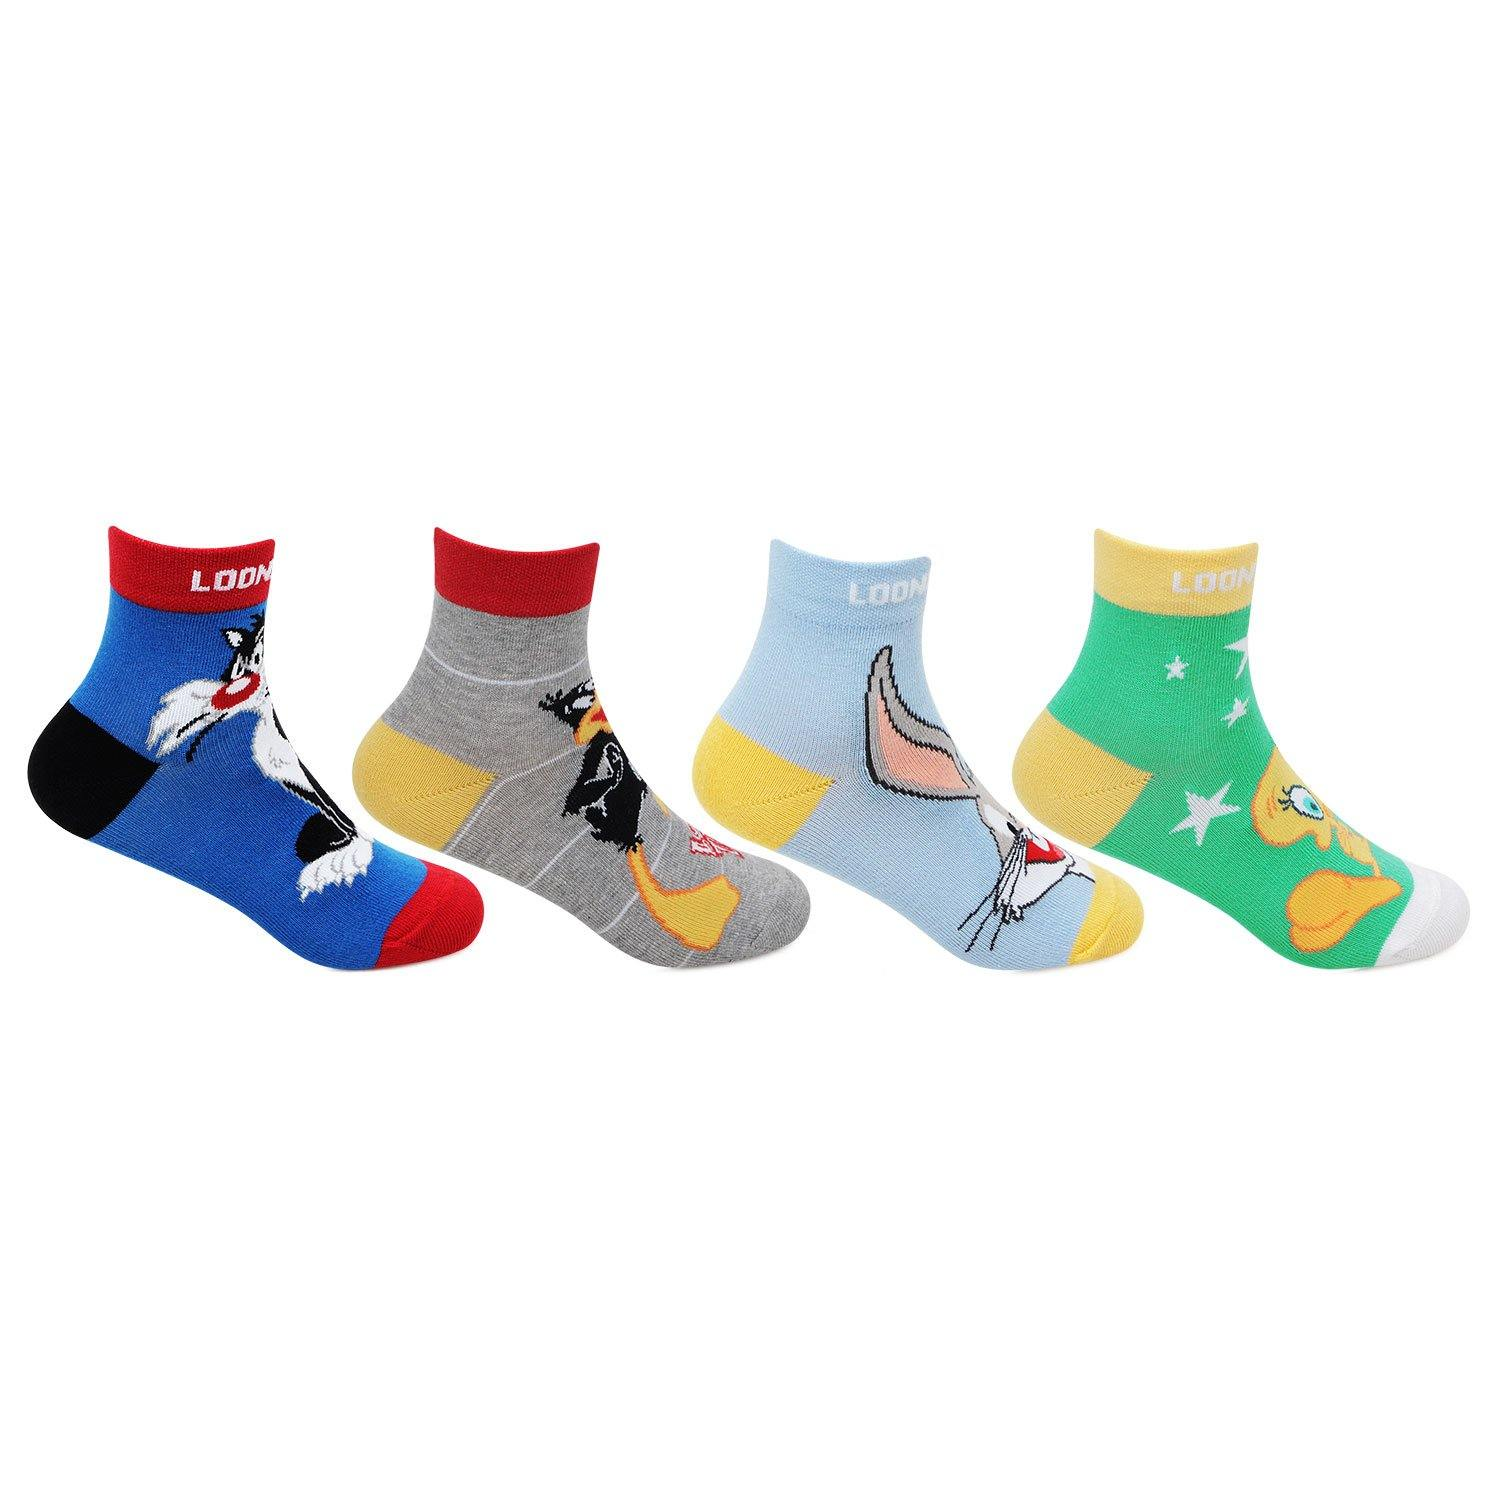 Looney Tunes Socks For Kids